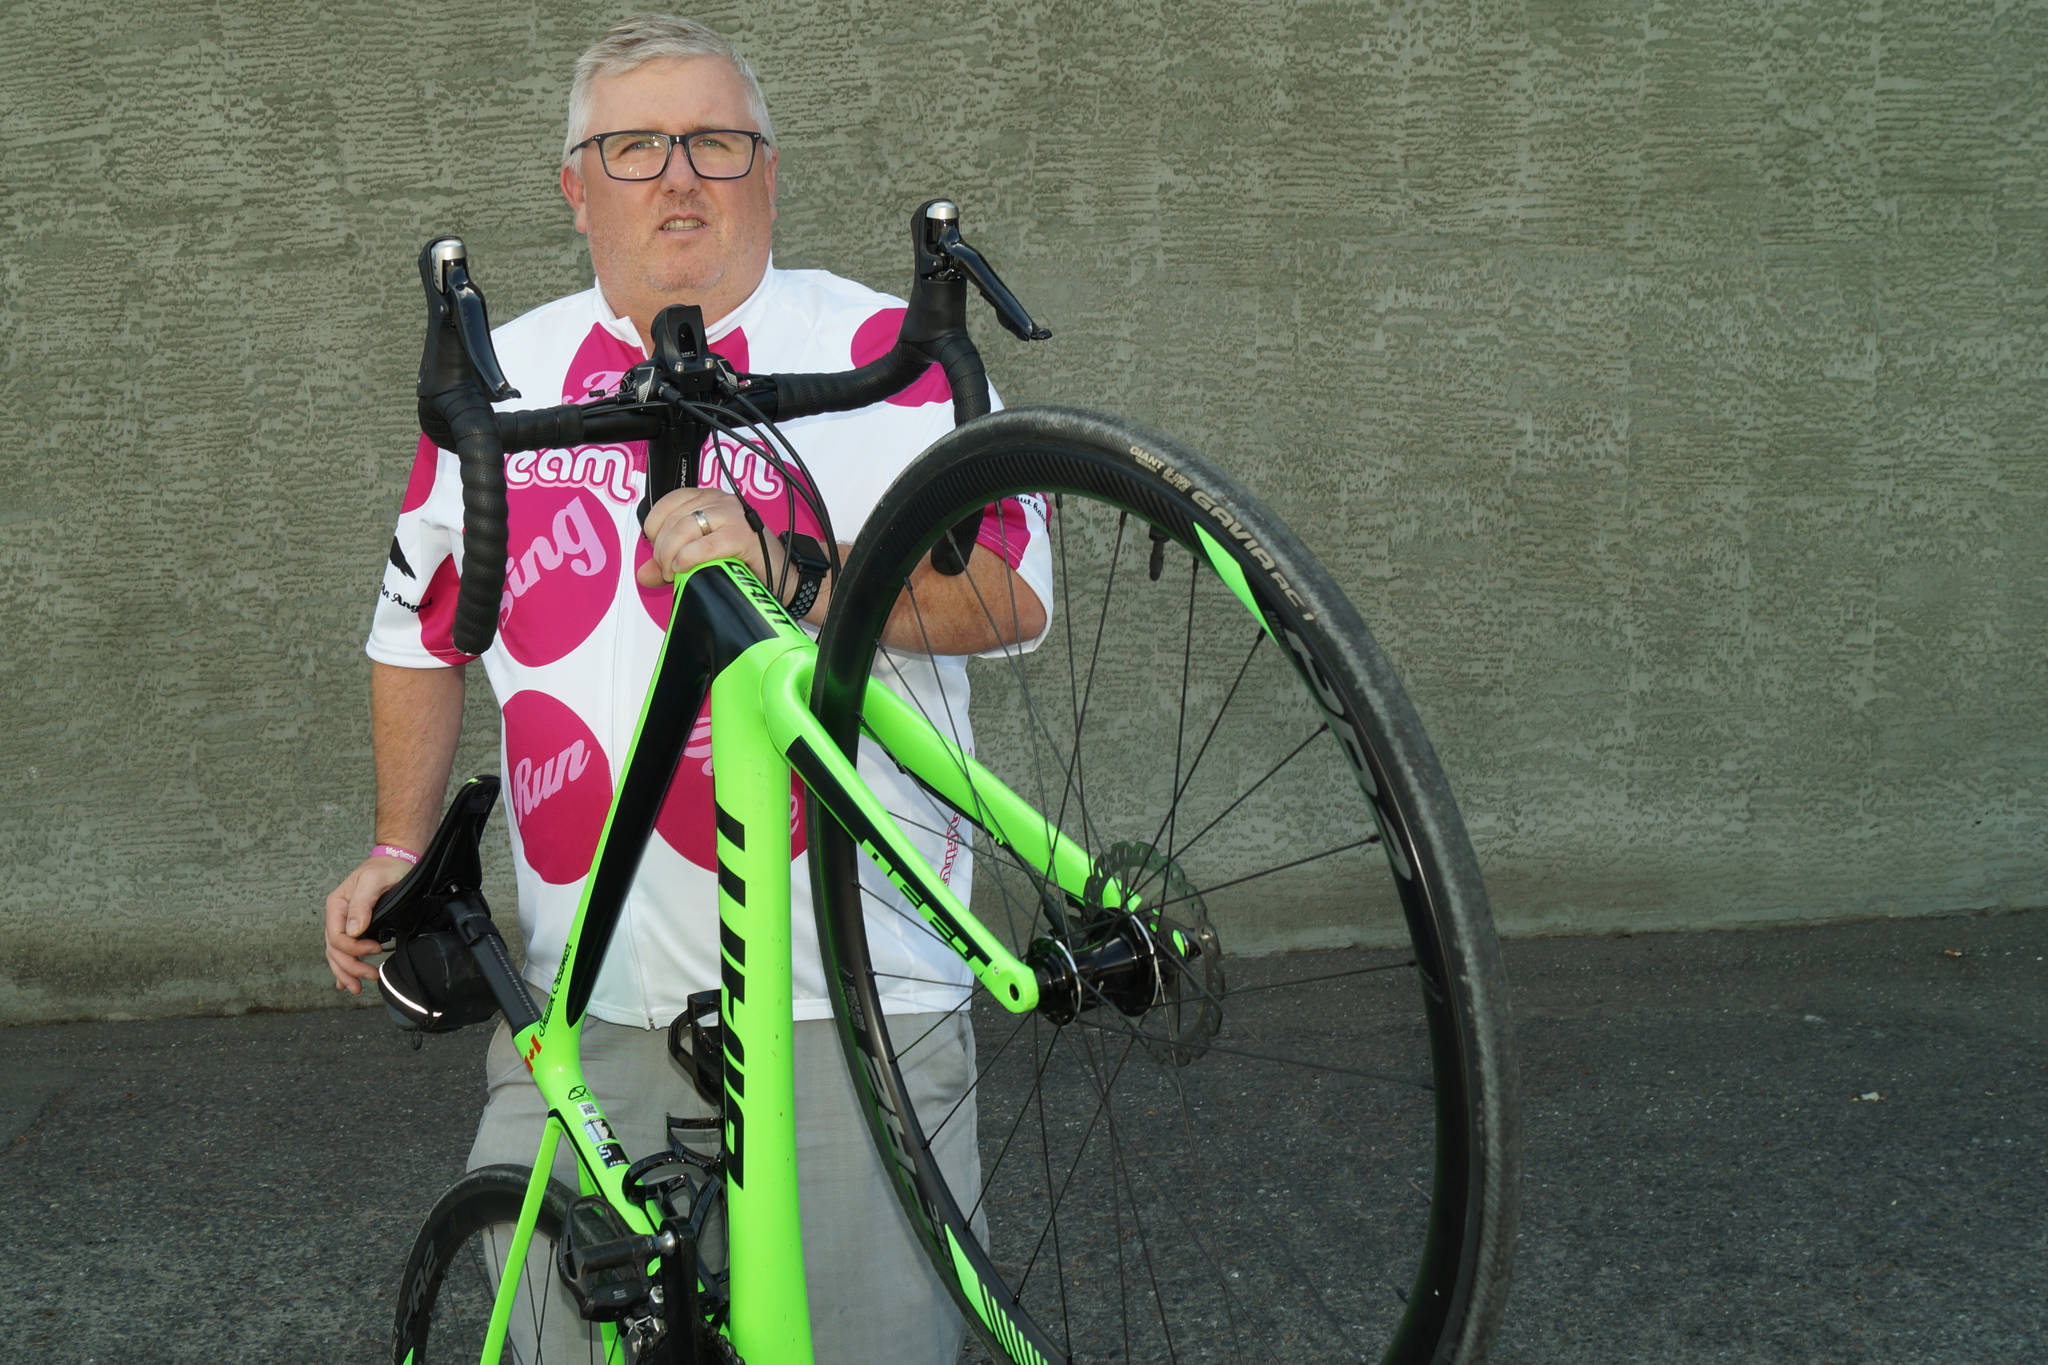 Colwood man takes on Ride to Conquer Cancer for 11th year in a row